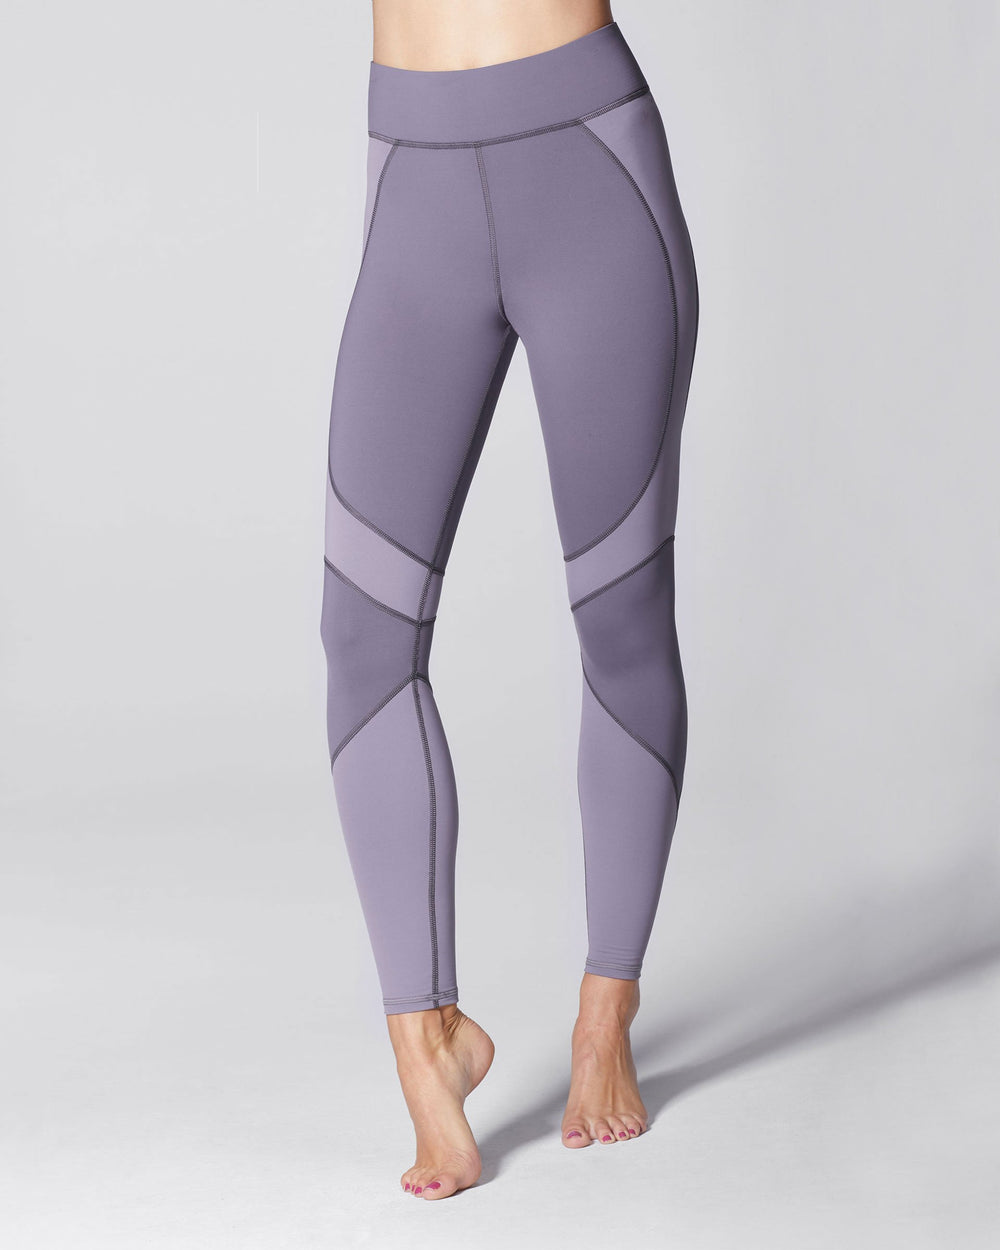 Glory Legging - Mauve